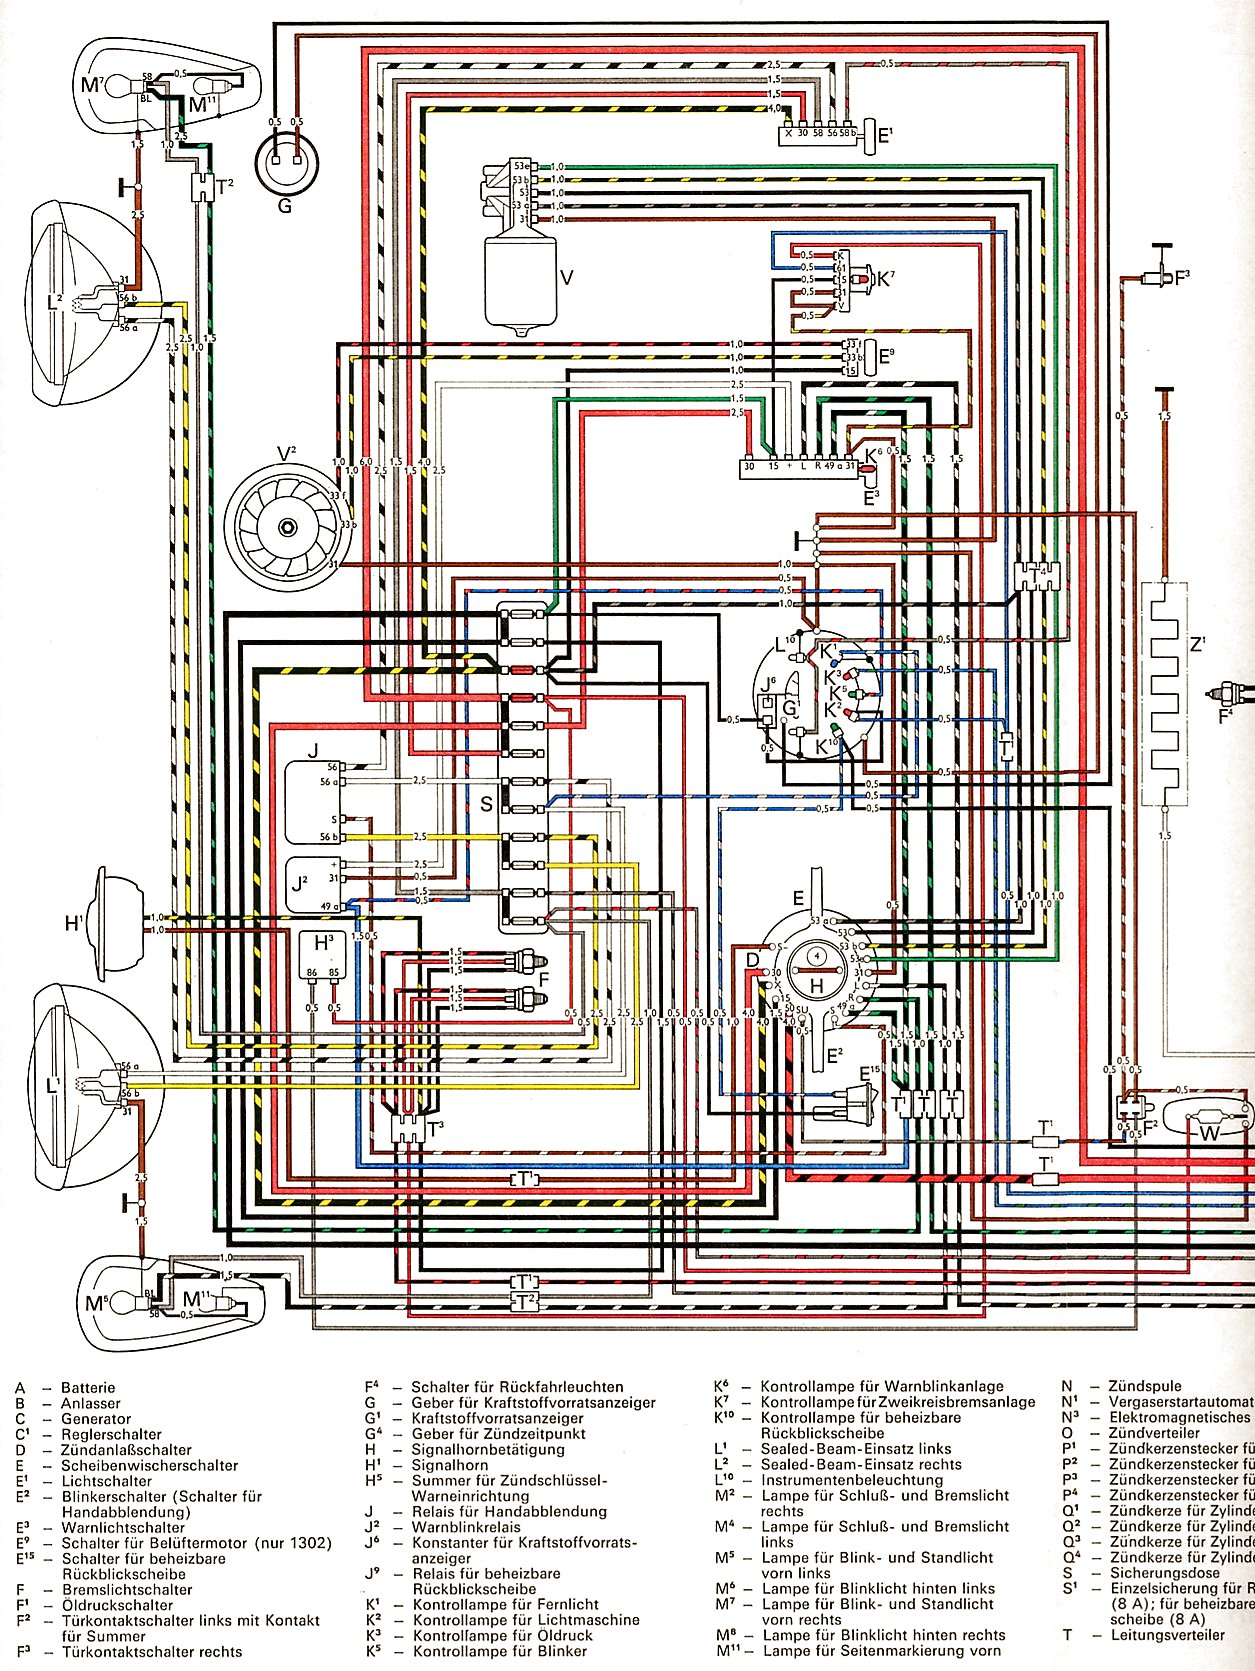 1974 Vw Beetle Wiring Diagram - Wiring Diagram •